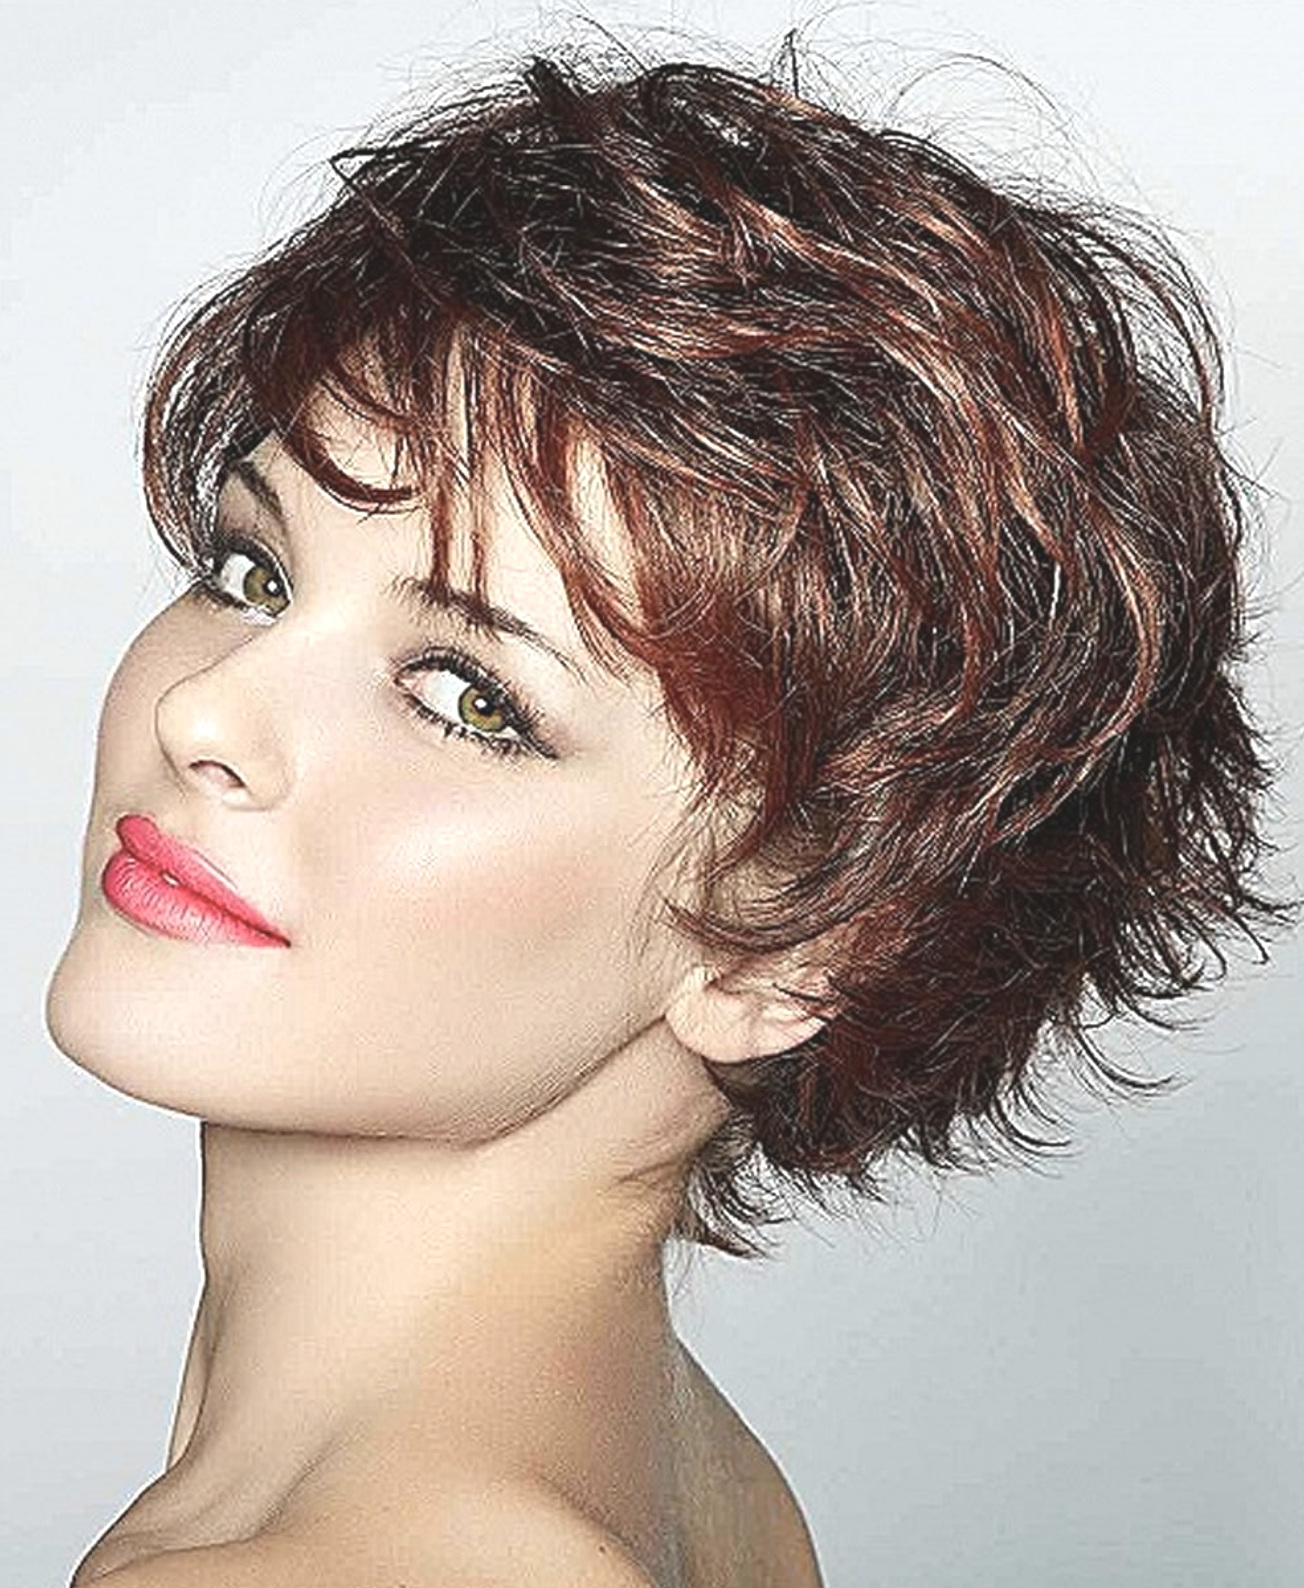 Hairstyles : Curly Short Hairstyles For Women Glamorous Intended For Pixie Haircuts With Tight Curls (View 17 of 20)